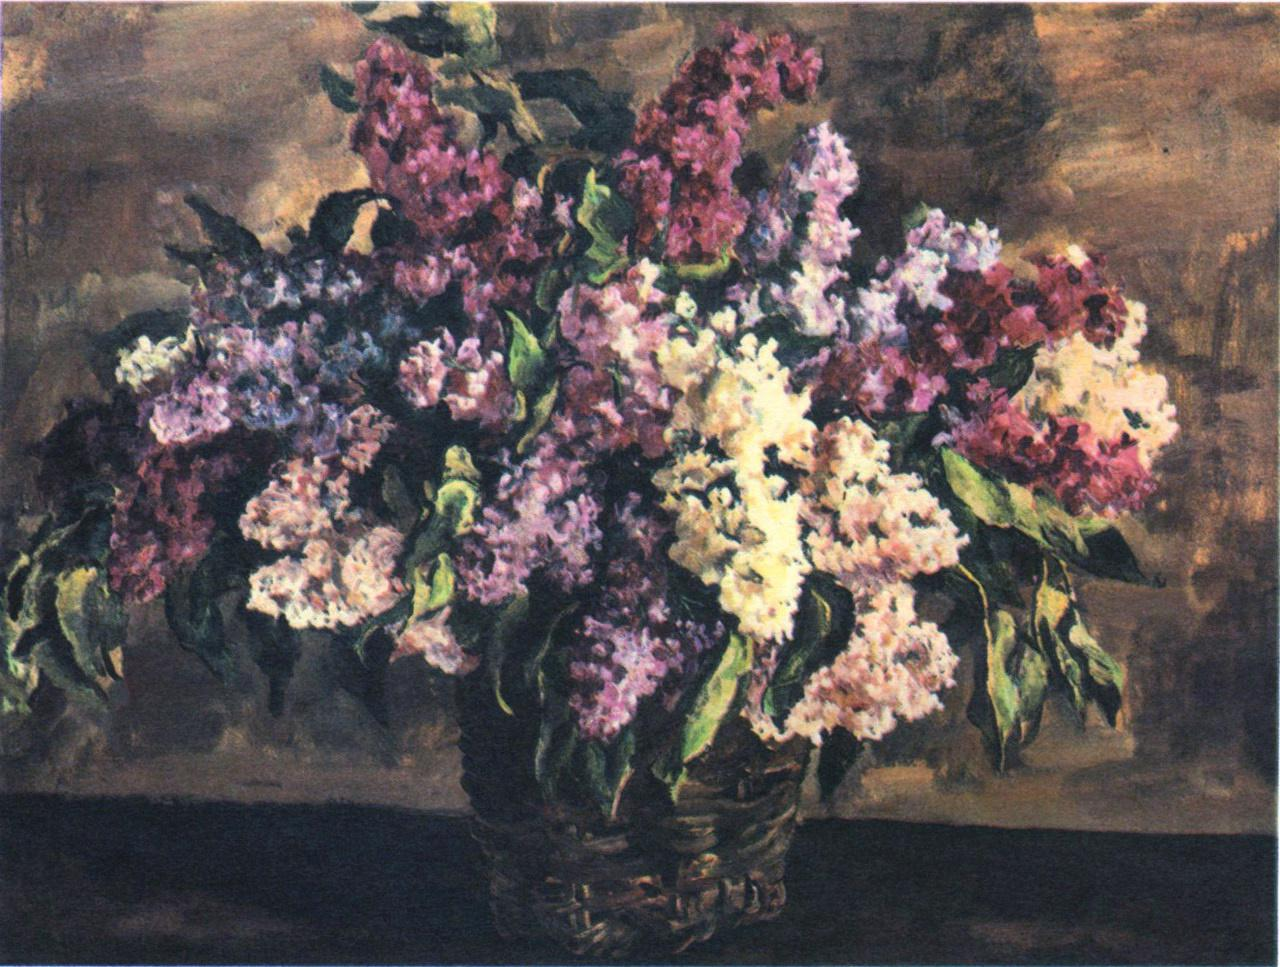 Conchalovsky-It's the flowers Lilac-Kончаловский-Сирень в корзине